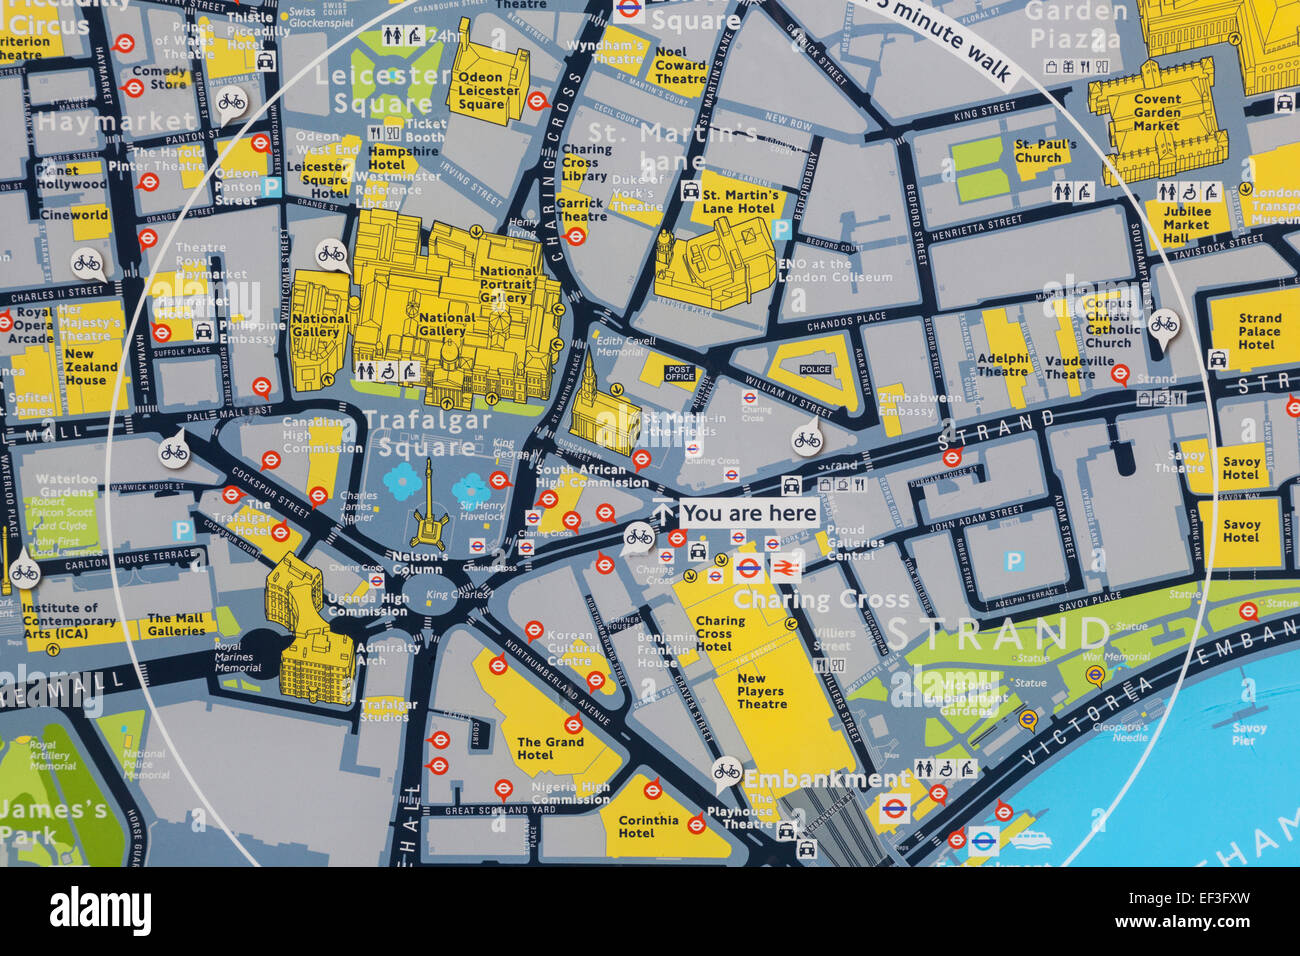 Map Of London And Surrounding Areas.England London Street Map Of Trafalgar Square And Surrounding Area